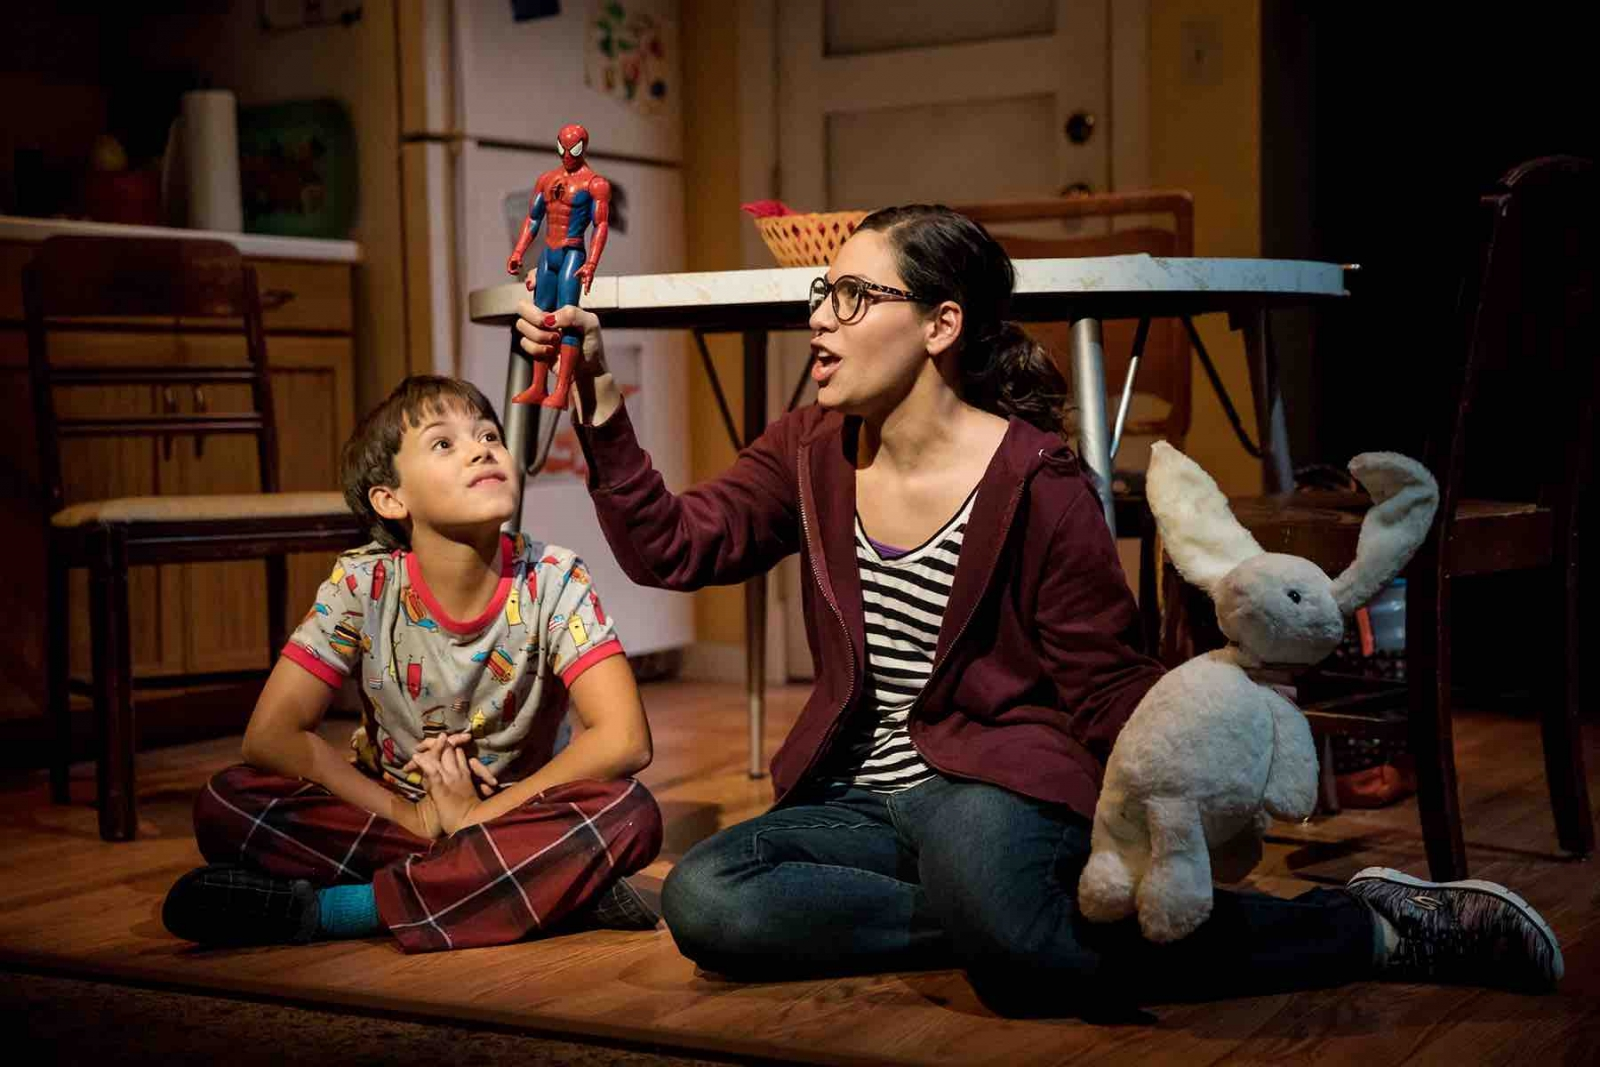 """Jesús (played by Luca La Hoz Calassara) and Gabi (Aysette Muñoz) in """"I Come from Arizona"""" by Carlos Murillos at the Children's Theatre Co. Photo by Dan Norman."""